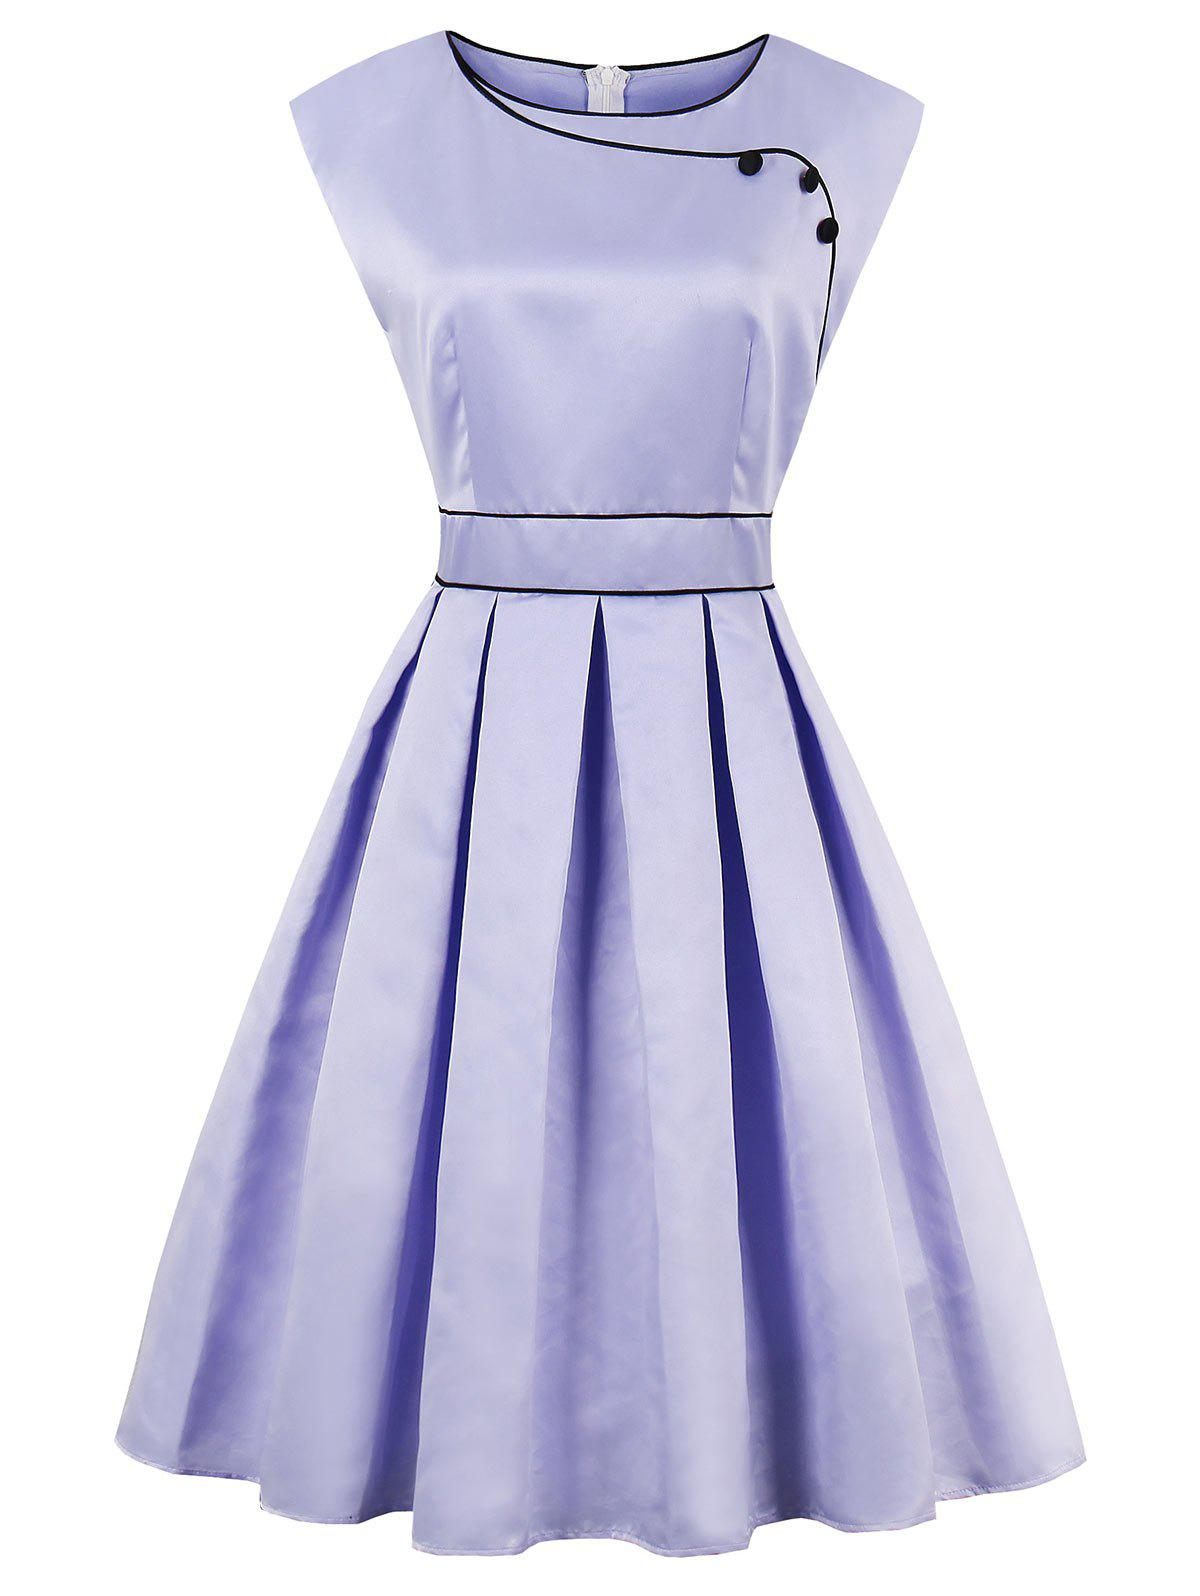 High Waist Sleeveless Faux Satin Vintage Dress - LAVENDER FROST 2XL